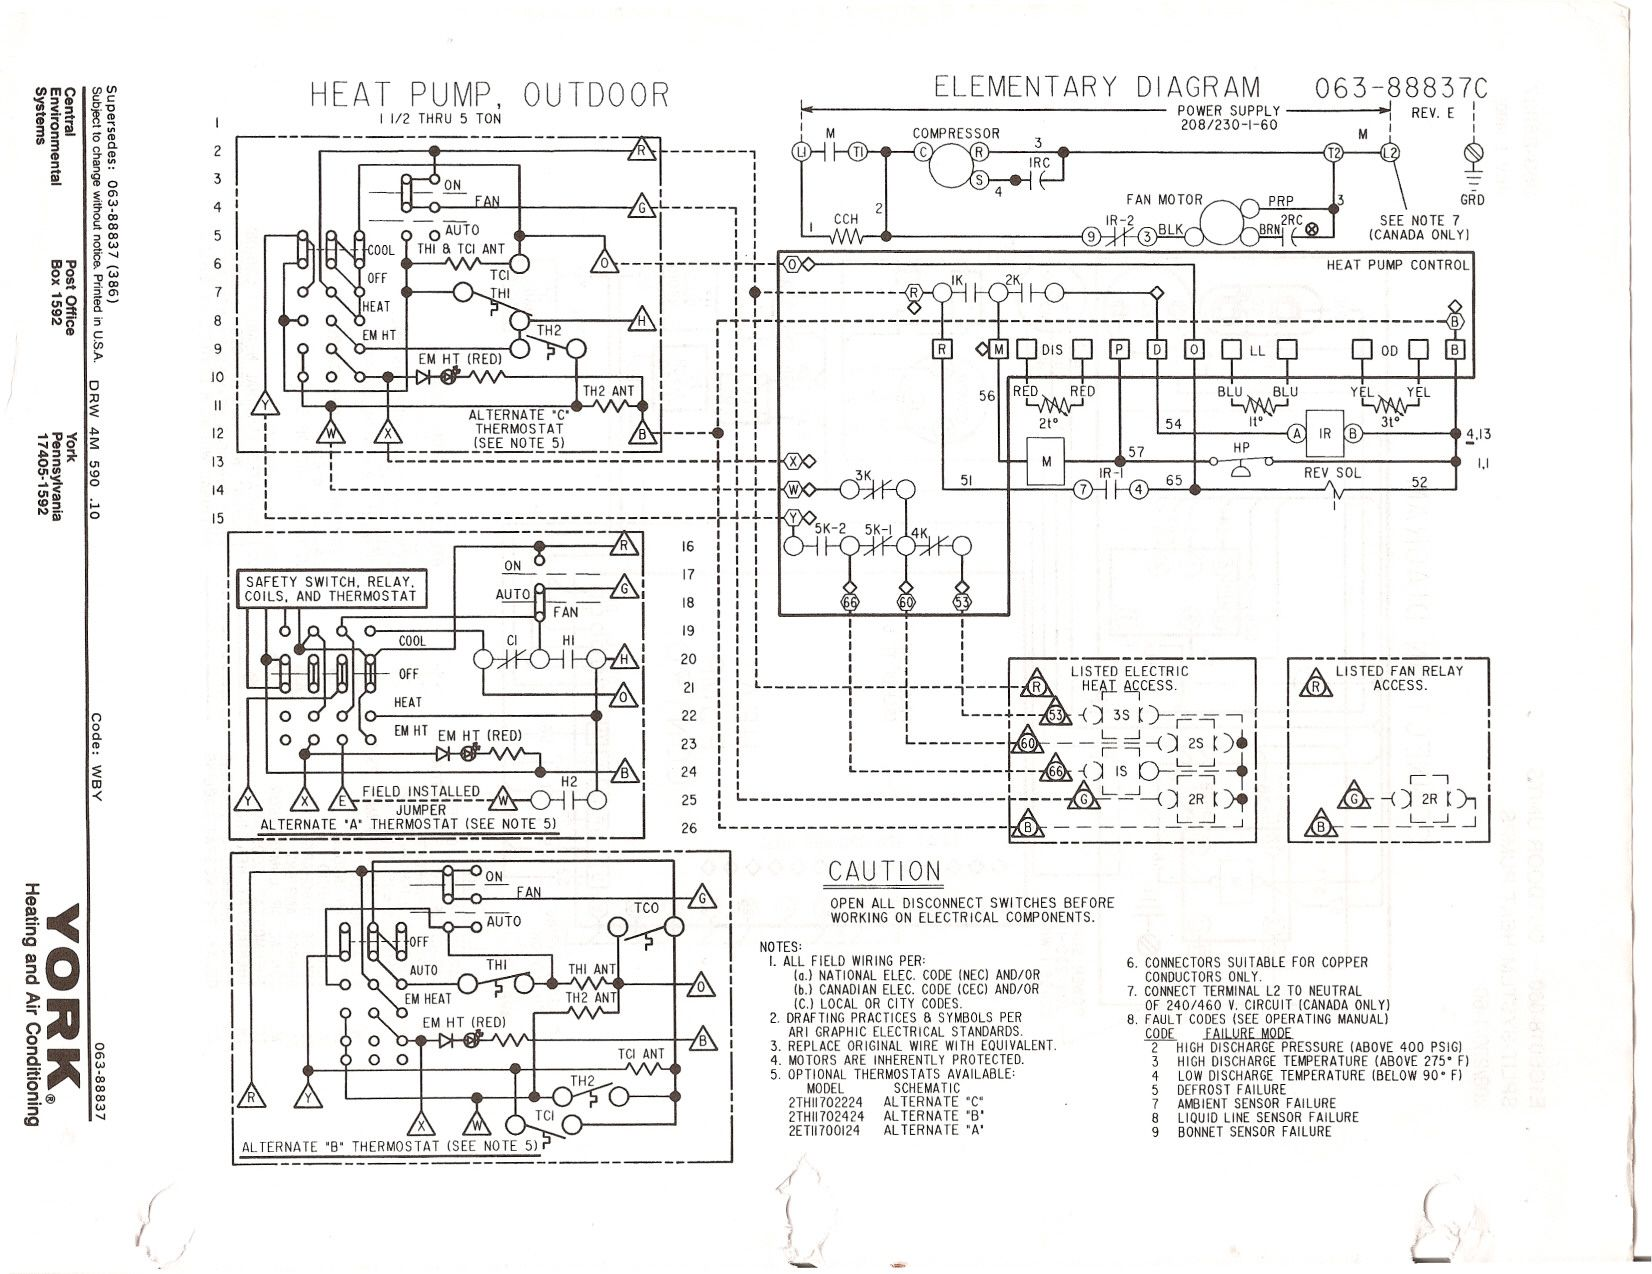 hight resolution of thermostat wiring troubleshooting choice image free troubleshooting examples circuit diagram humidifier garage heater